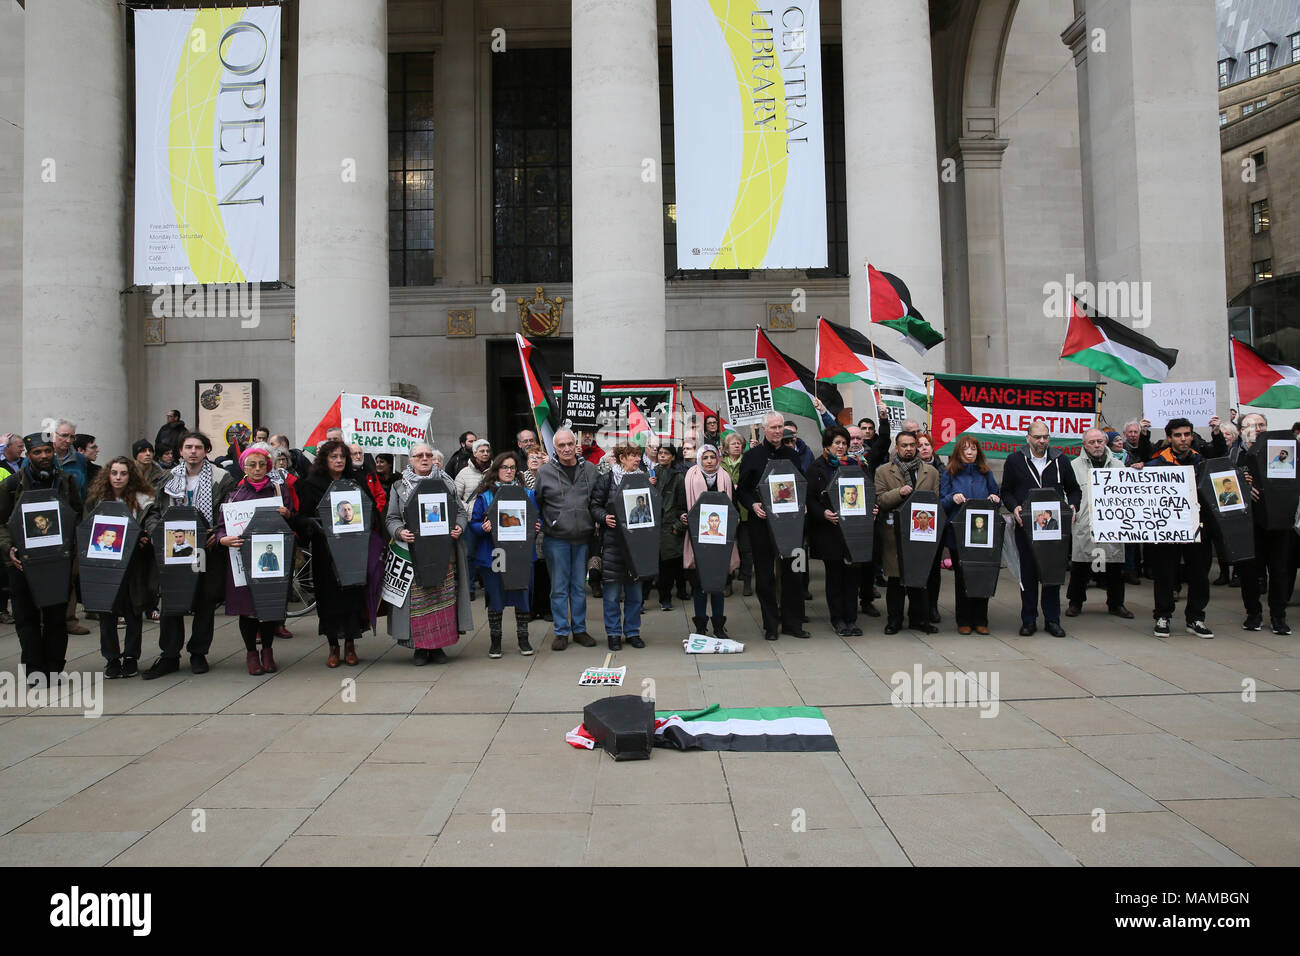 Manchester, UK. 3rd April, 2018. The Palestine Solidarity Campaign and supporters of Palestine hold a vigil after the recent killing and injuries of Palestiians during a protest near the Gaza border.  Coffins representing the children killed in the conflict are held up at the vigil, St Peters Square, Manchester, 3rd April, 2018 (C)Barbara Cook/Alamy Live News - Stock Image